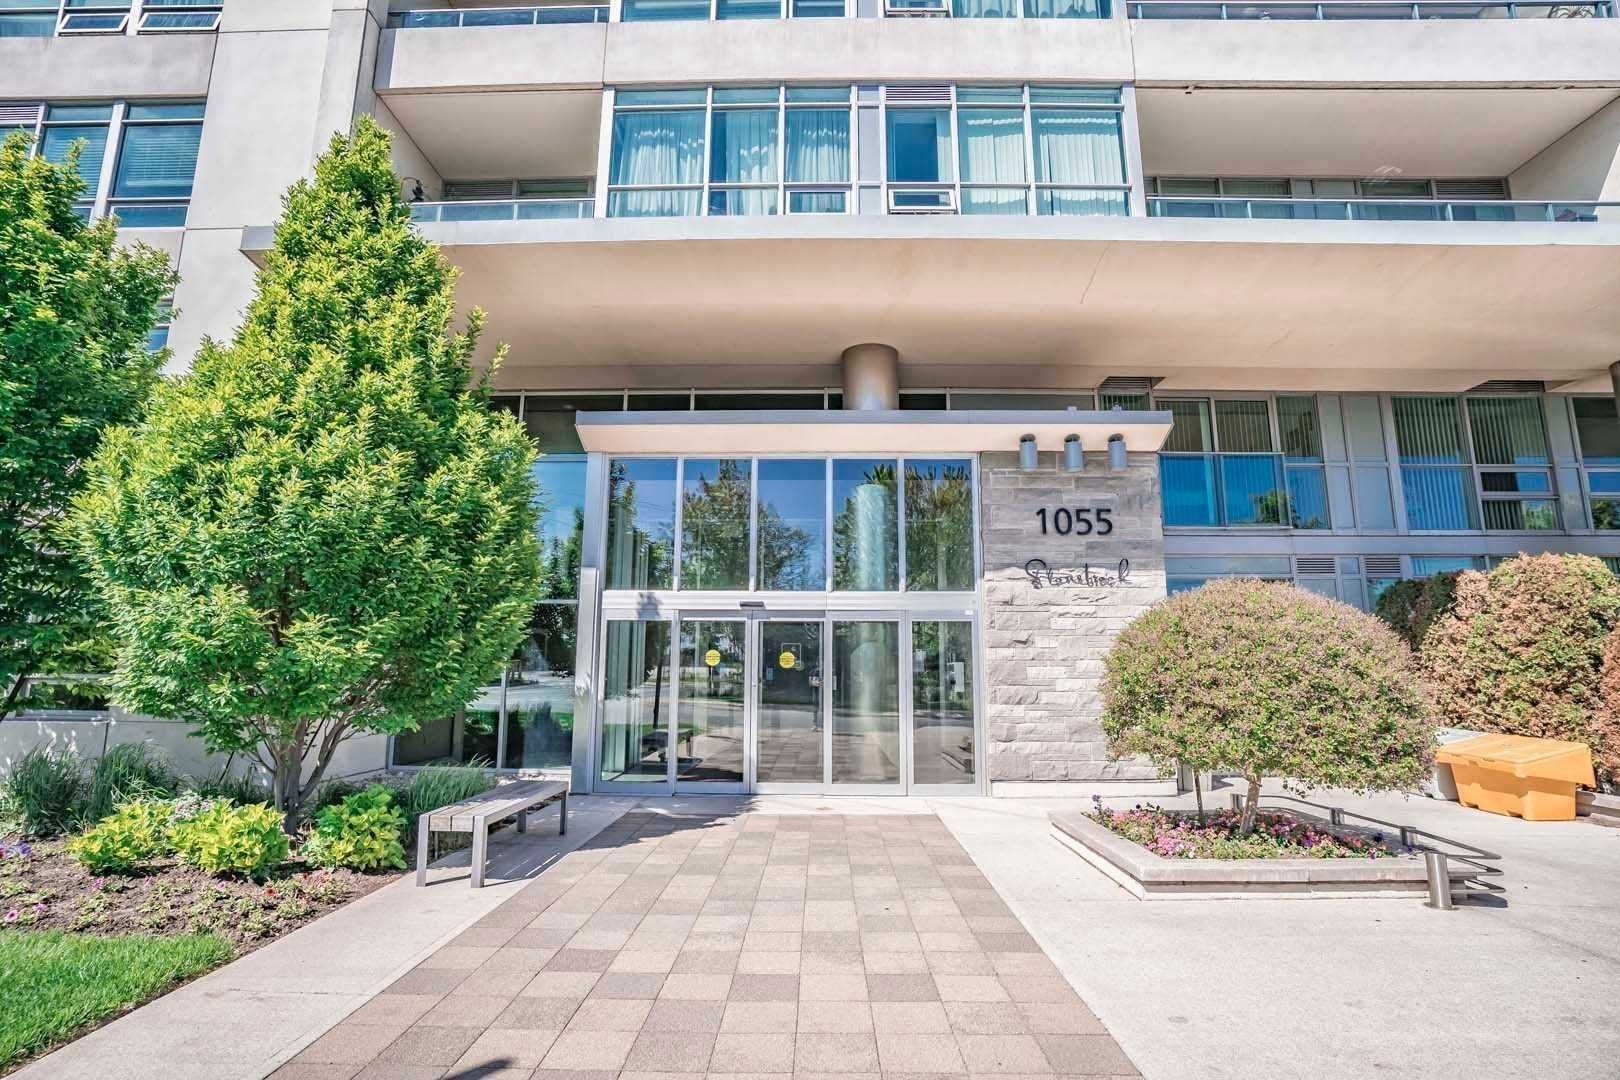 1055 Southdown Rd, unit 902 for rent in Toronto - image #1